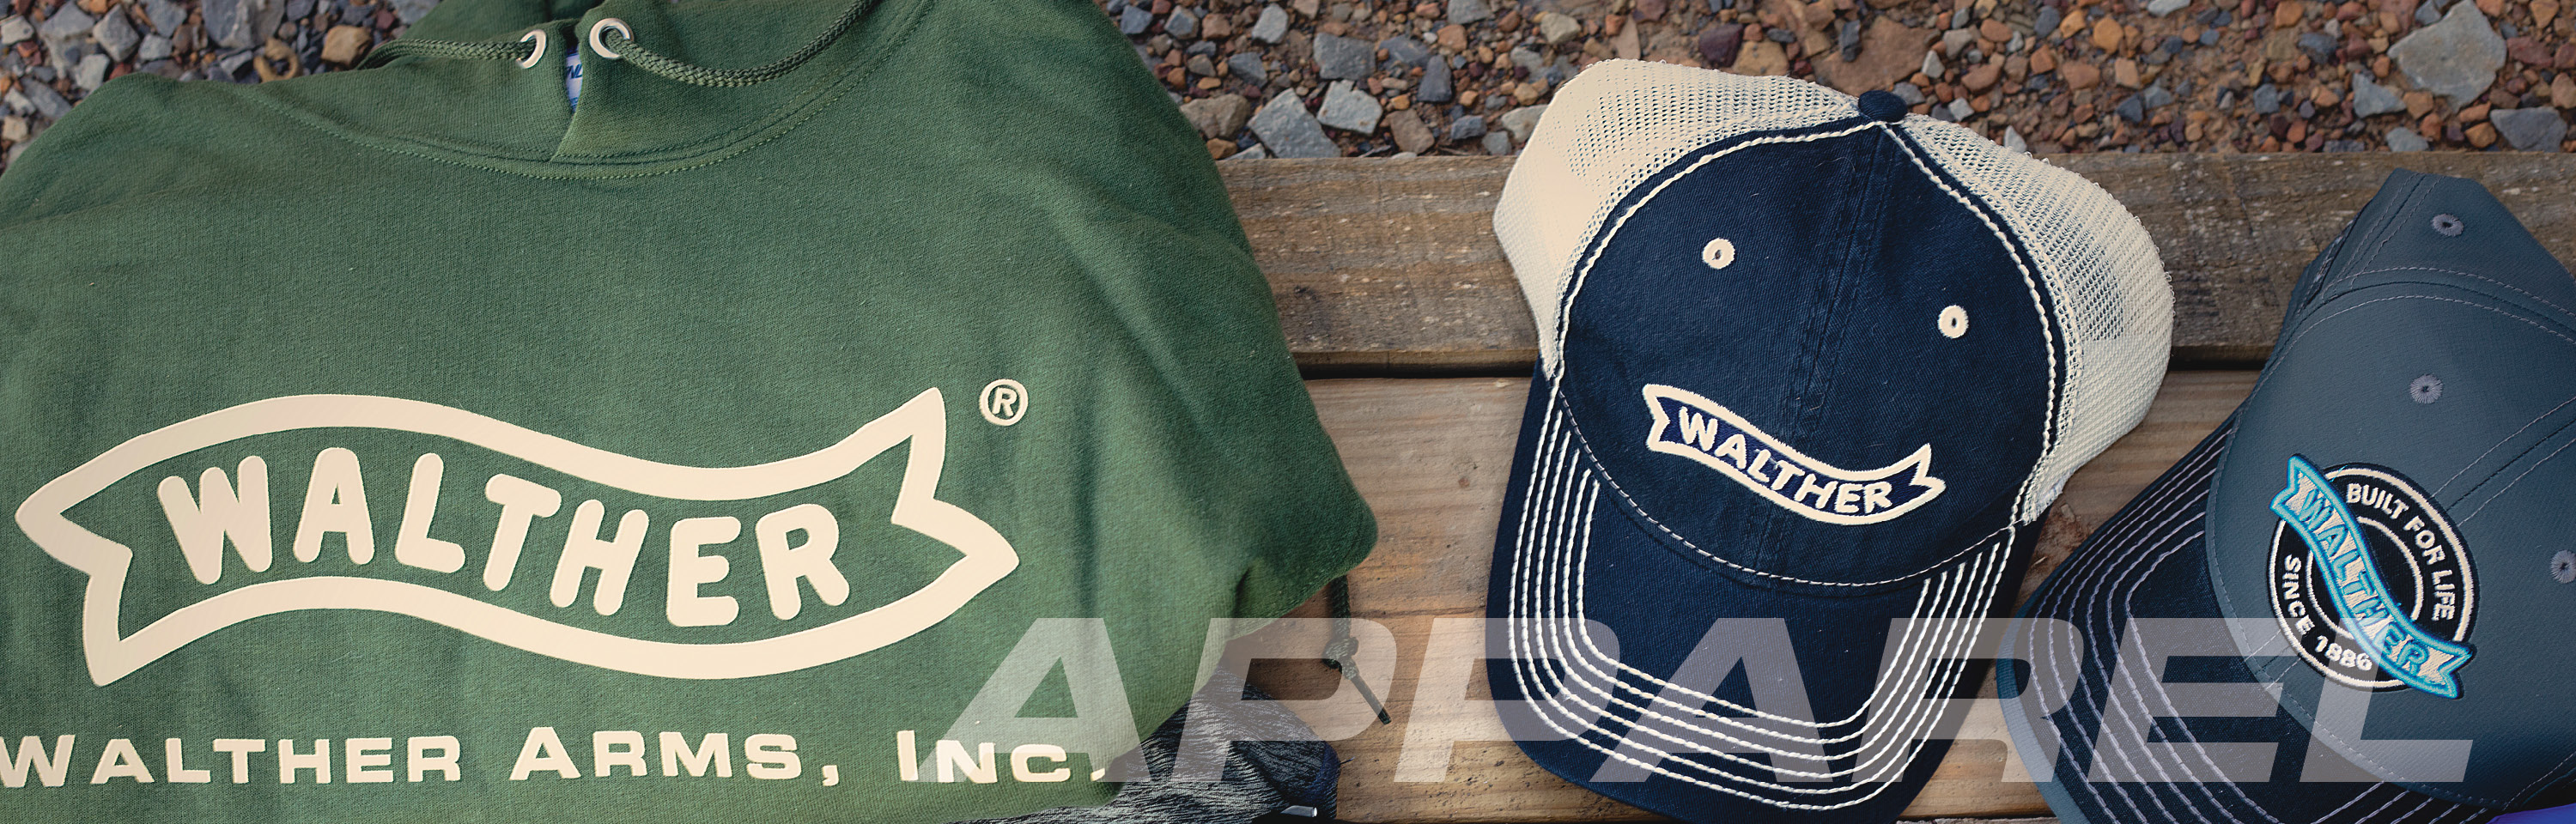 Walther Arms Apparel